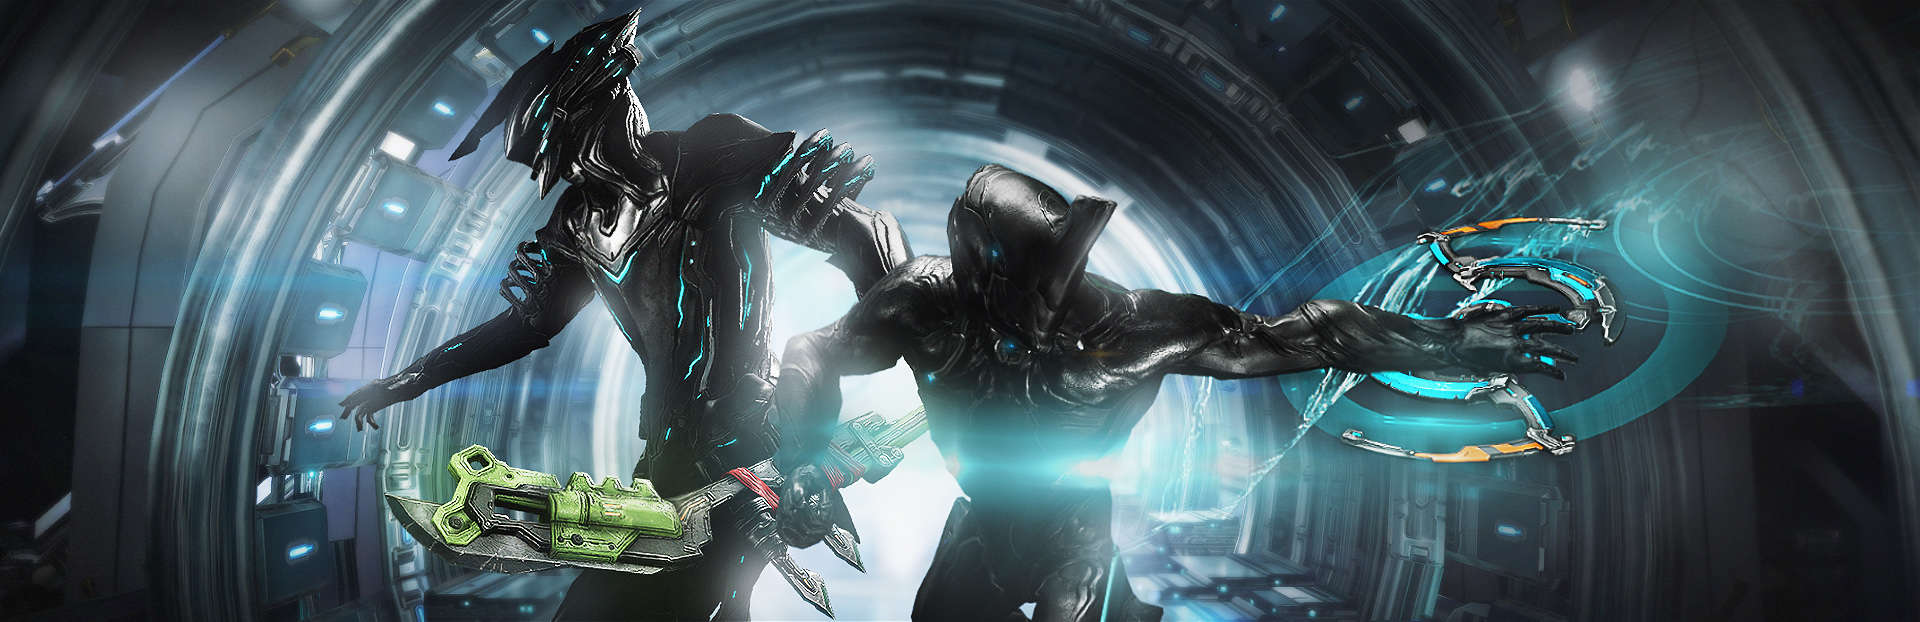 Warframe Chimera 2310 Patch Notes All Patch Notes